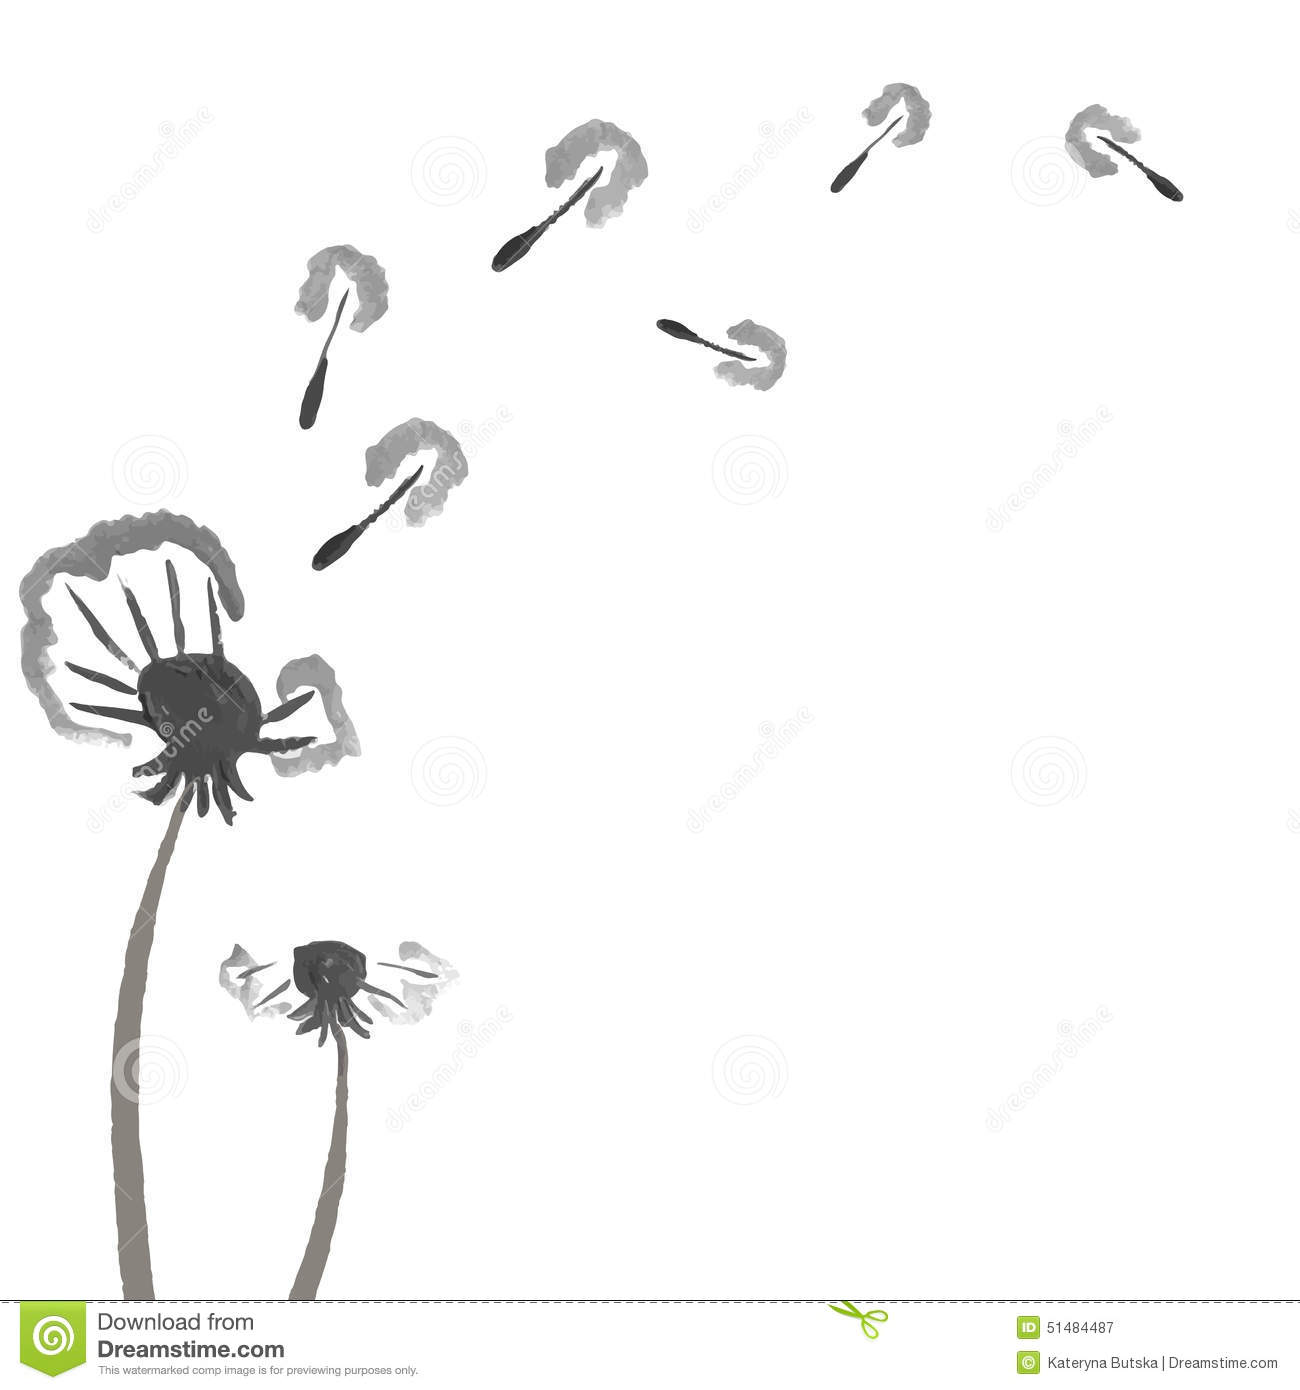 Stock Illustration Watercolor Dandelions Abstract Flower Background Hand Drawn Place Your Text Black White Monochrome Vector Image51484487 on vintage romance illustrations